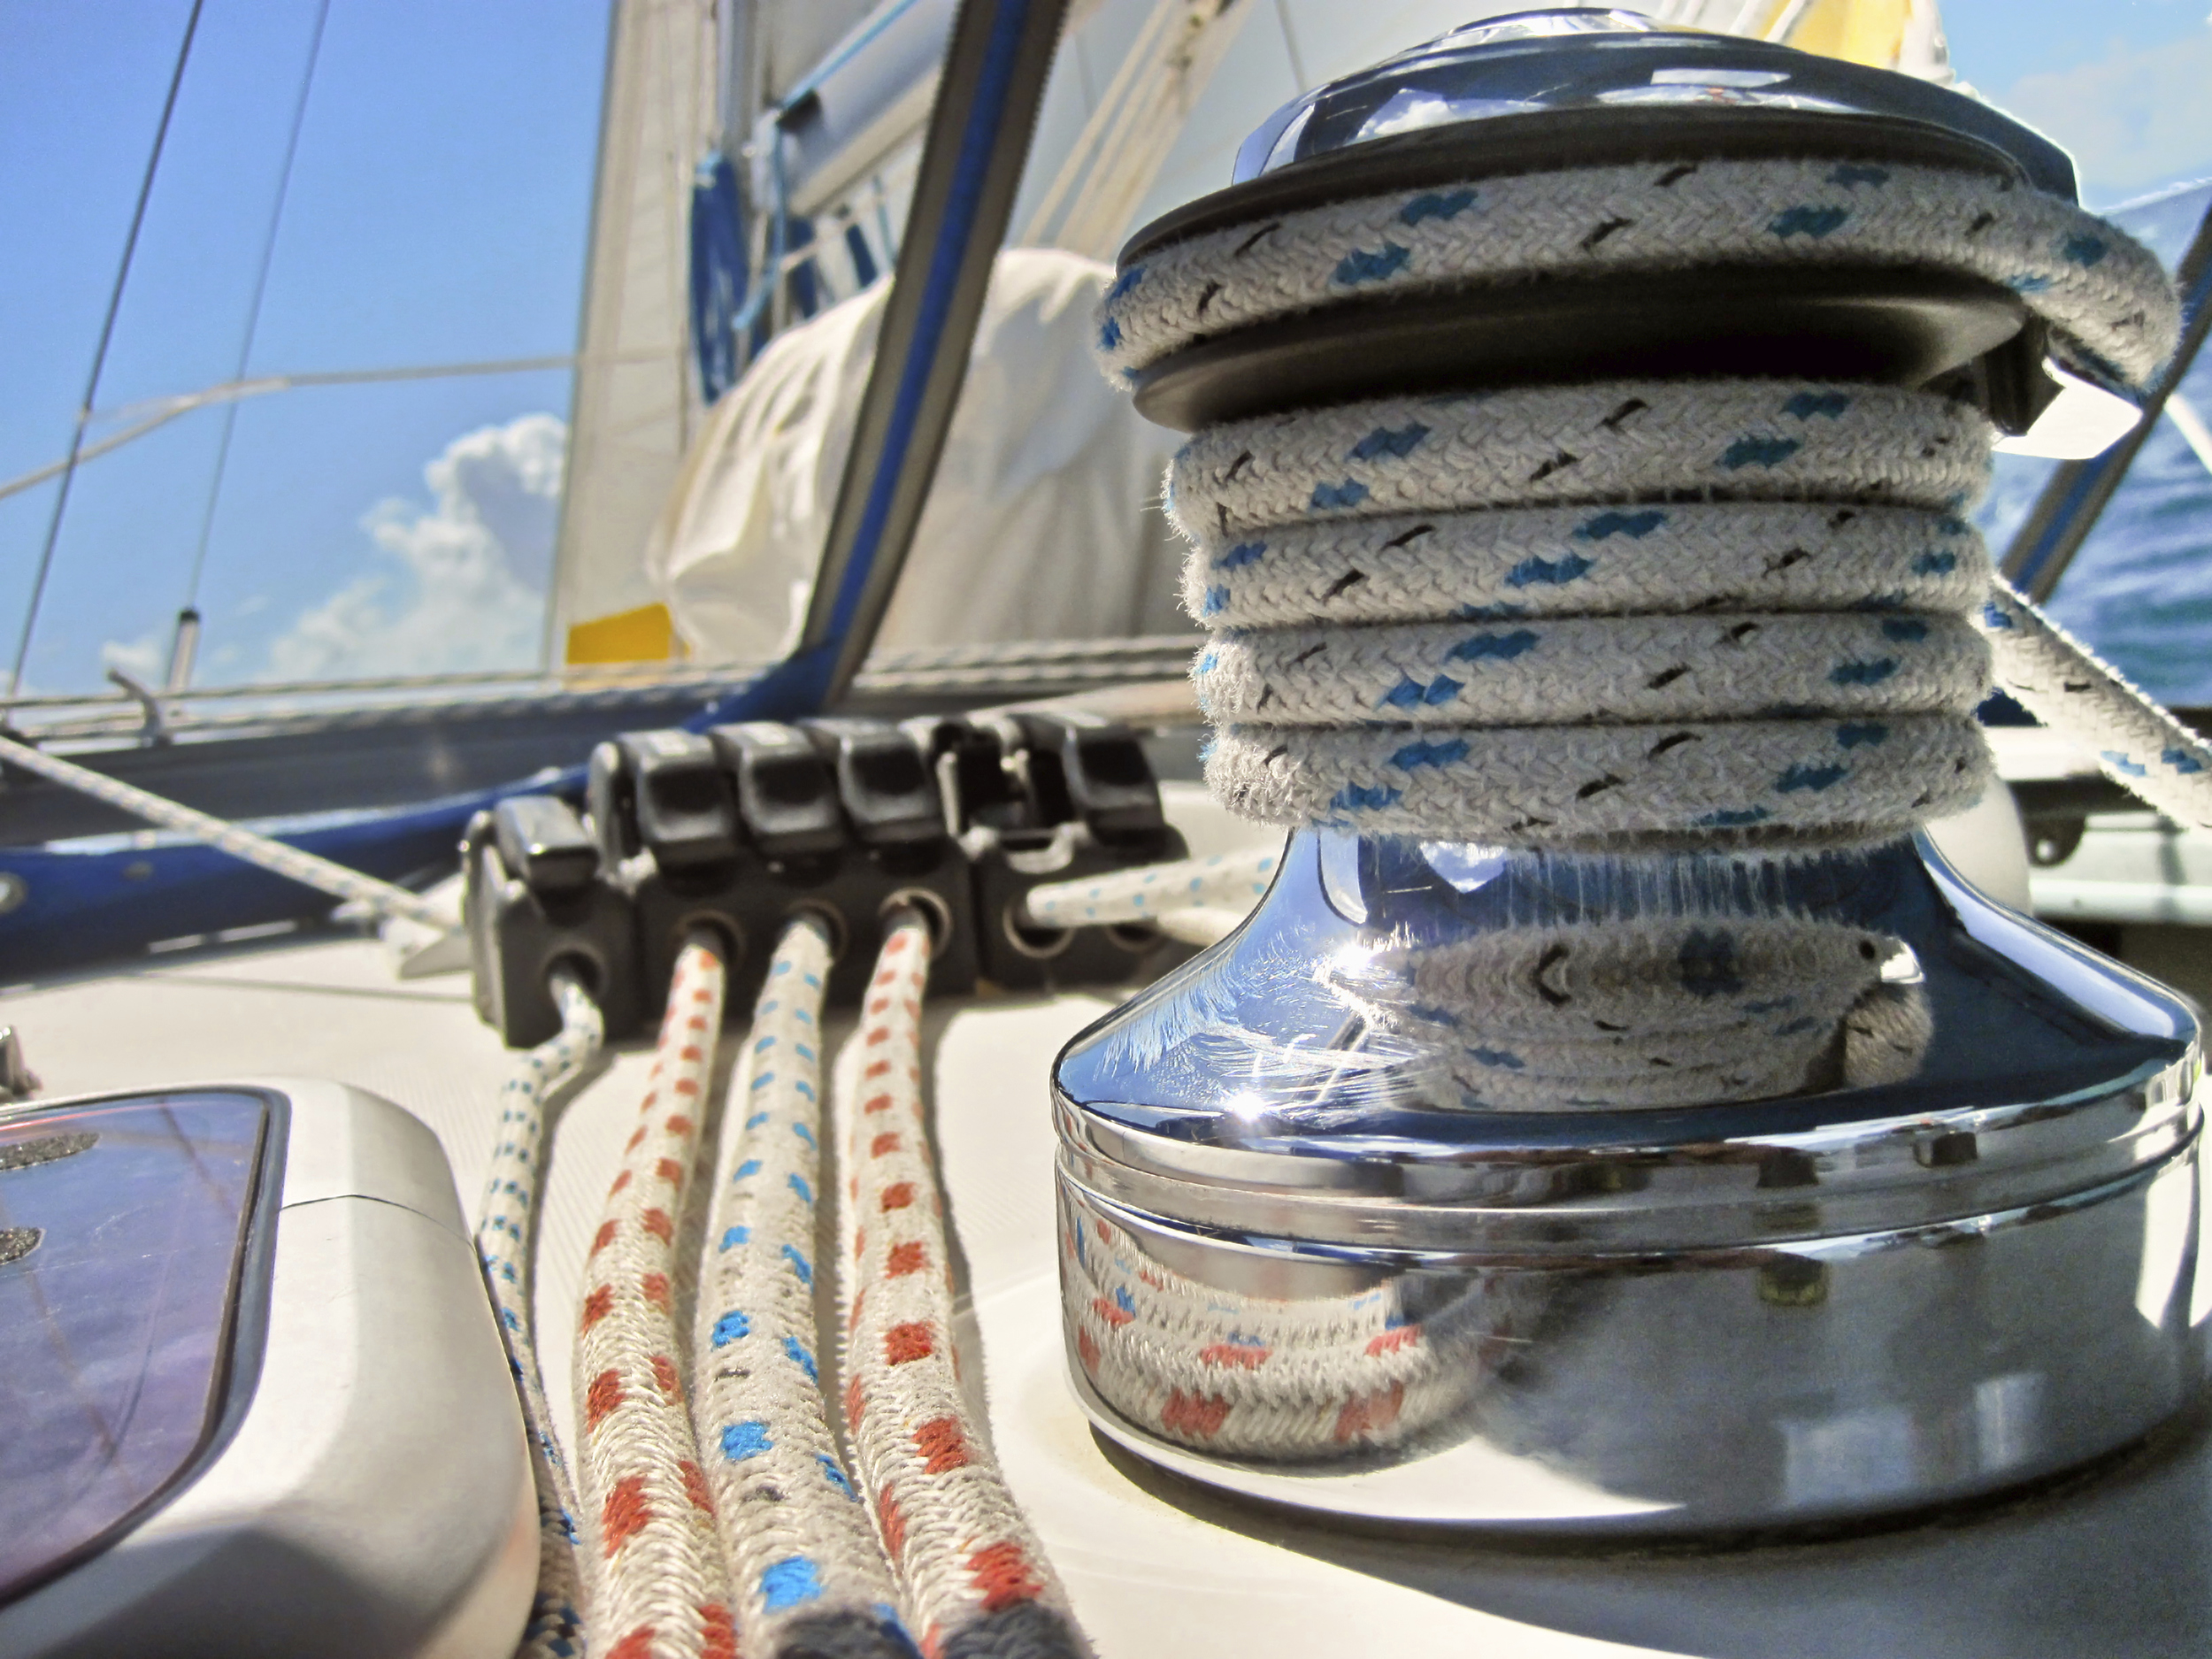 $1,063,071 Federal jury trial judgment over a multi-million dollar luxury yacht with decision upheld on appeal   View Stefan Jouret Bio for more details